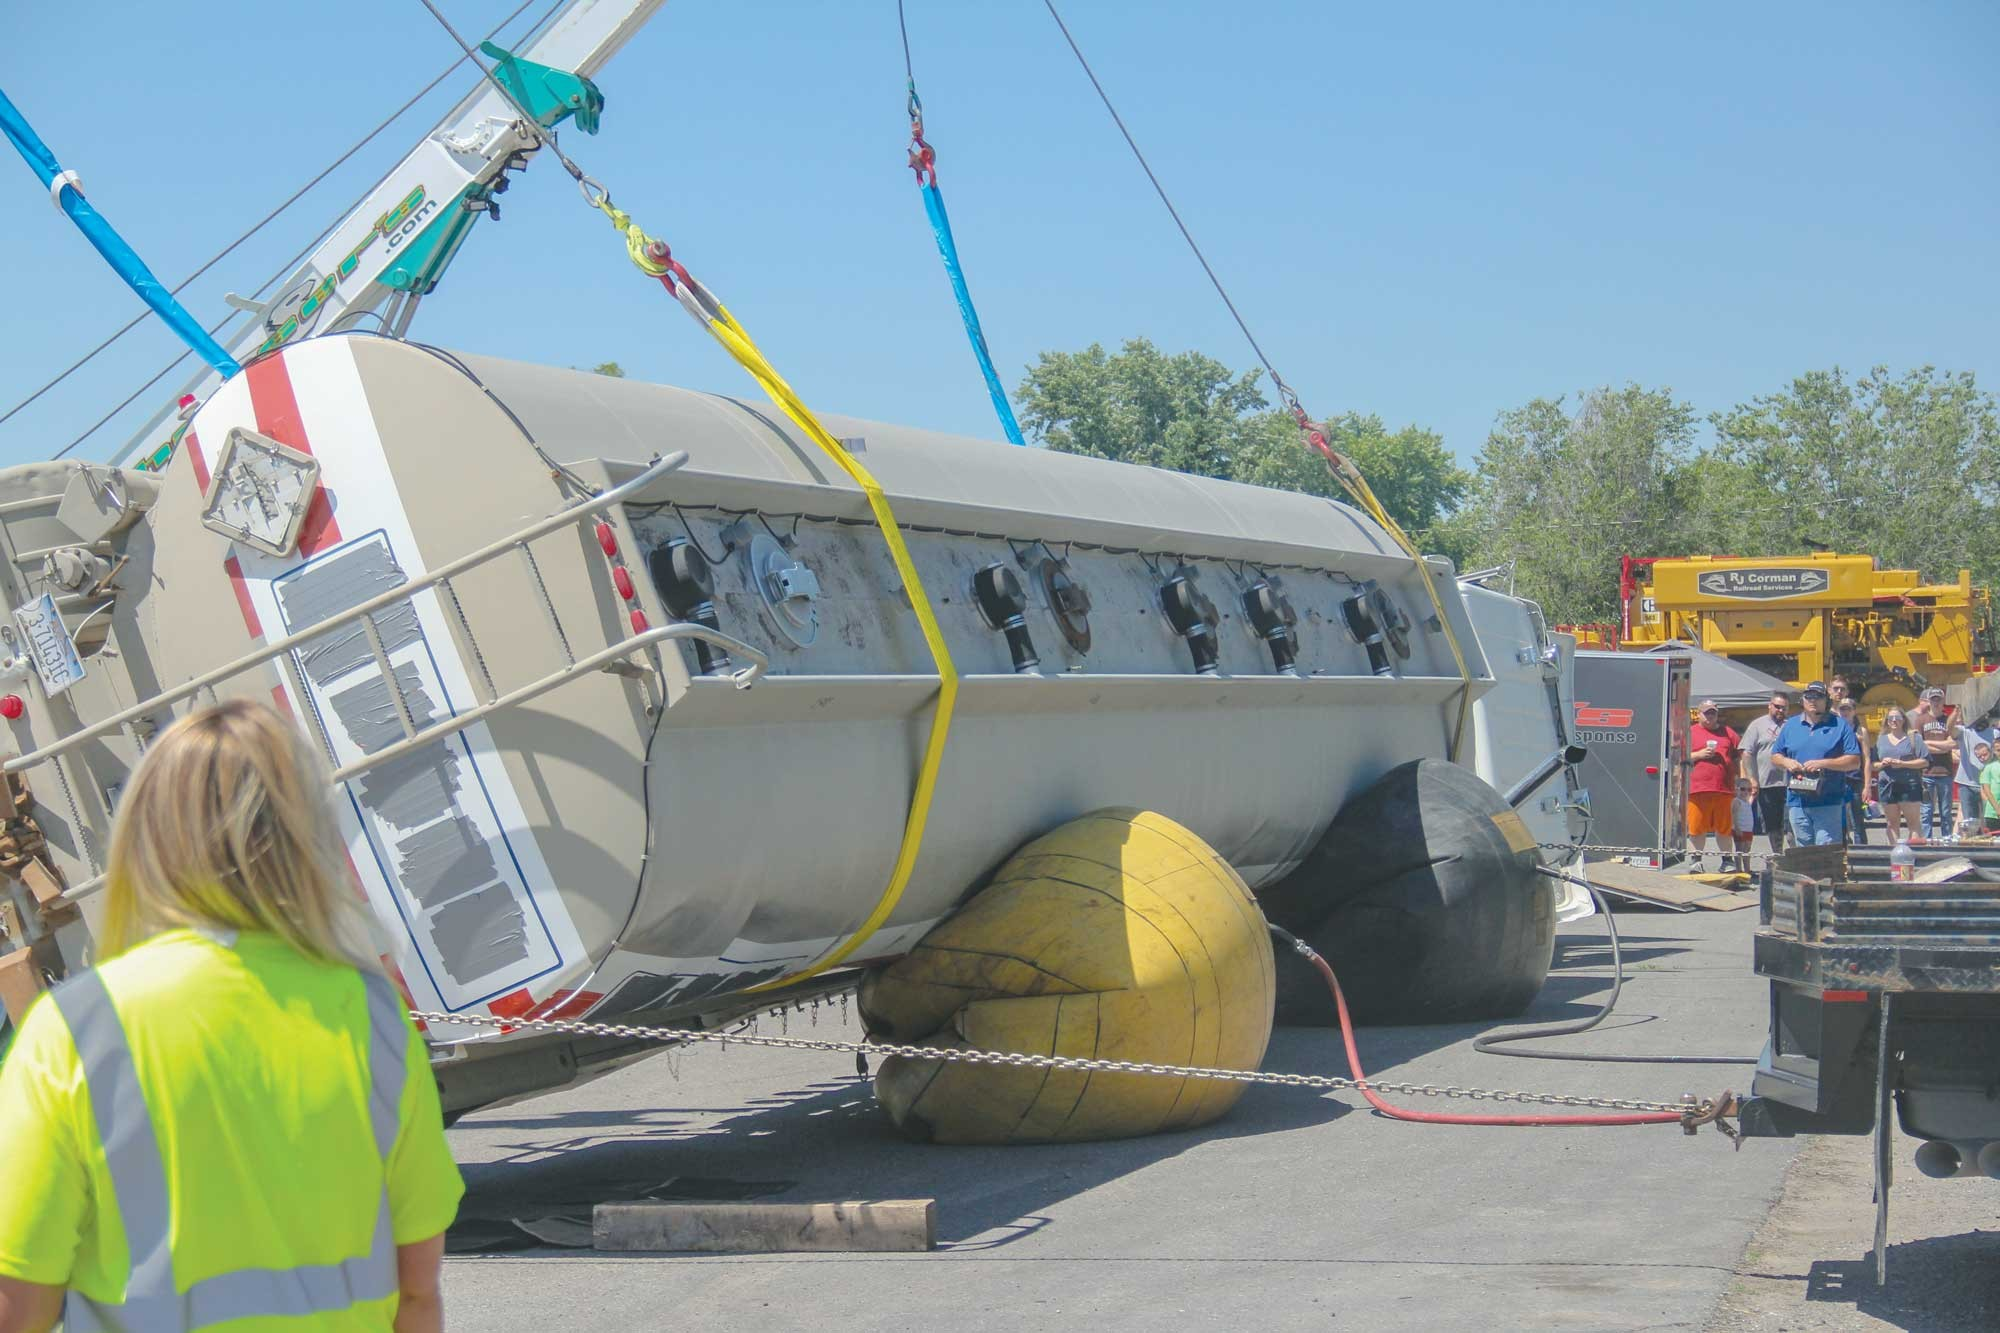 Airbags are used by Hansers' to lift an overturned tanker truck during Fire Safety Day.